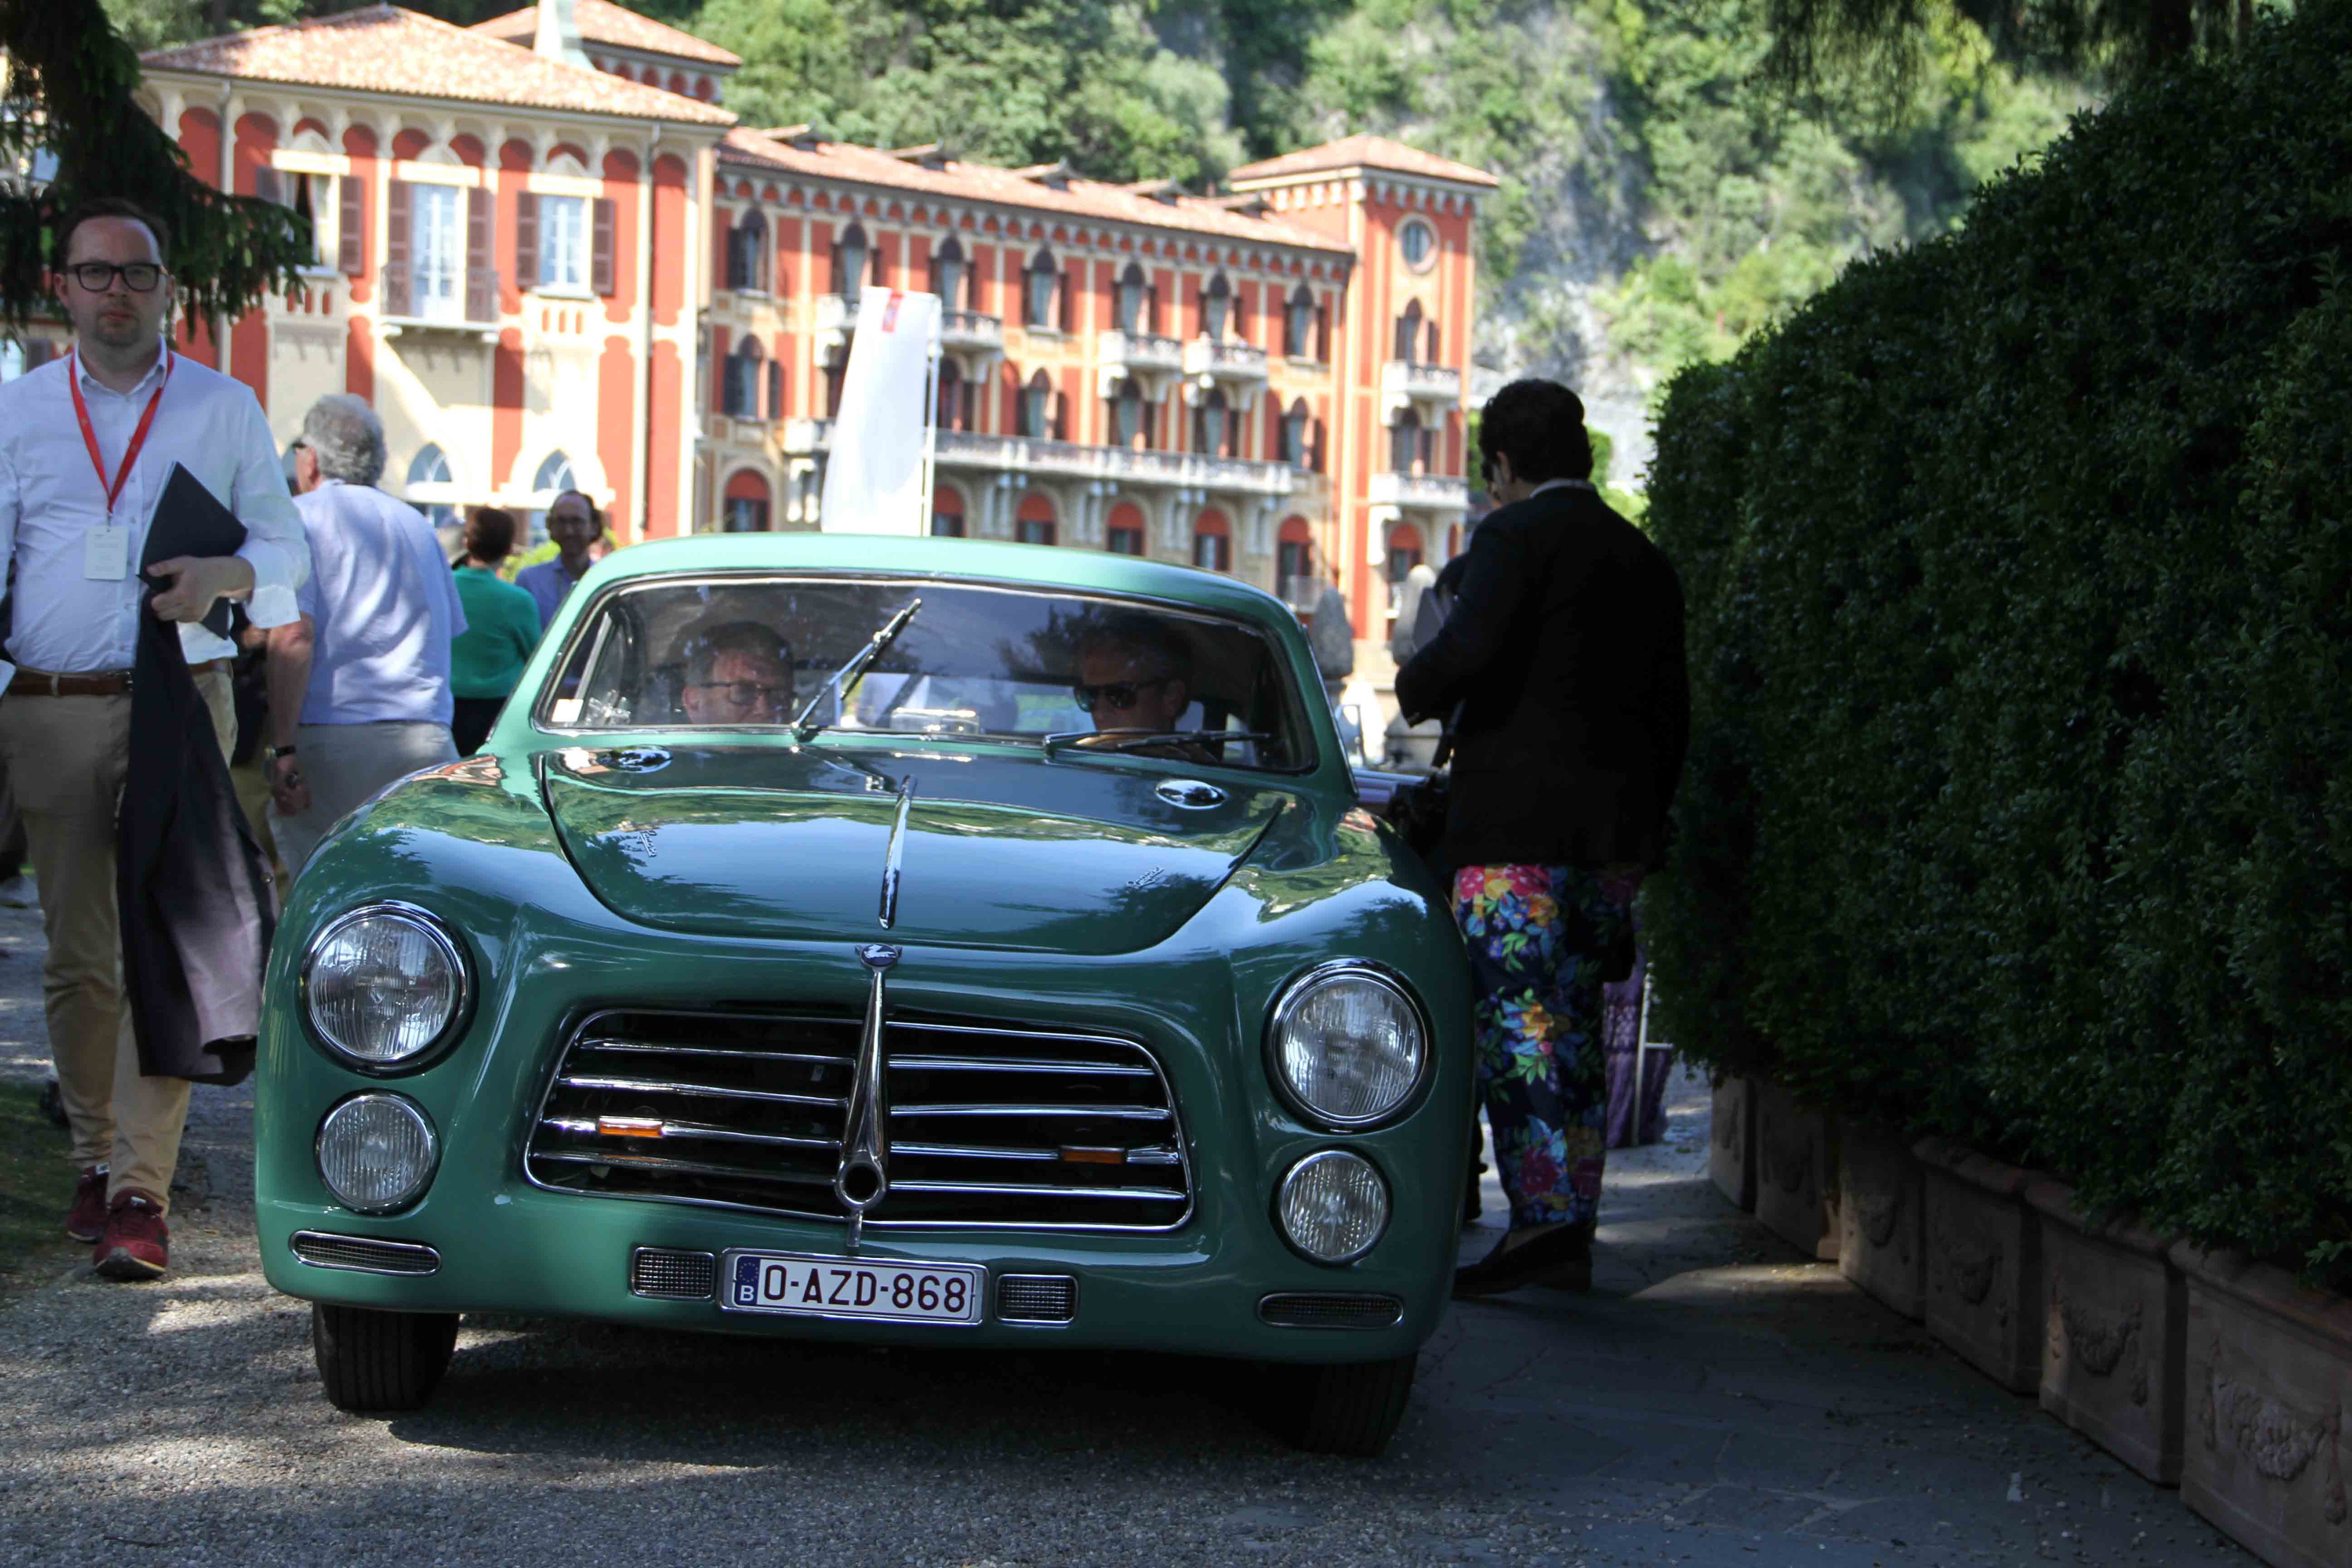 Pegaso Z-102, 1951. Photo Report: Watch And Car Spotting At The 2016 Concorso d'Eleganza Villa d'Este With A. Lange & Söhne Photo Report: Watch And Car Spotting At The 2016 Concorso d'Eleganza Villa d'Este With A. Lange & Söhne IMG 5556